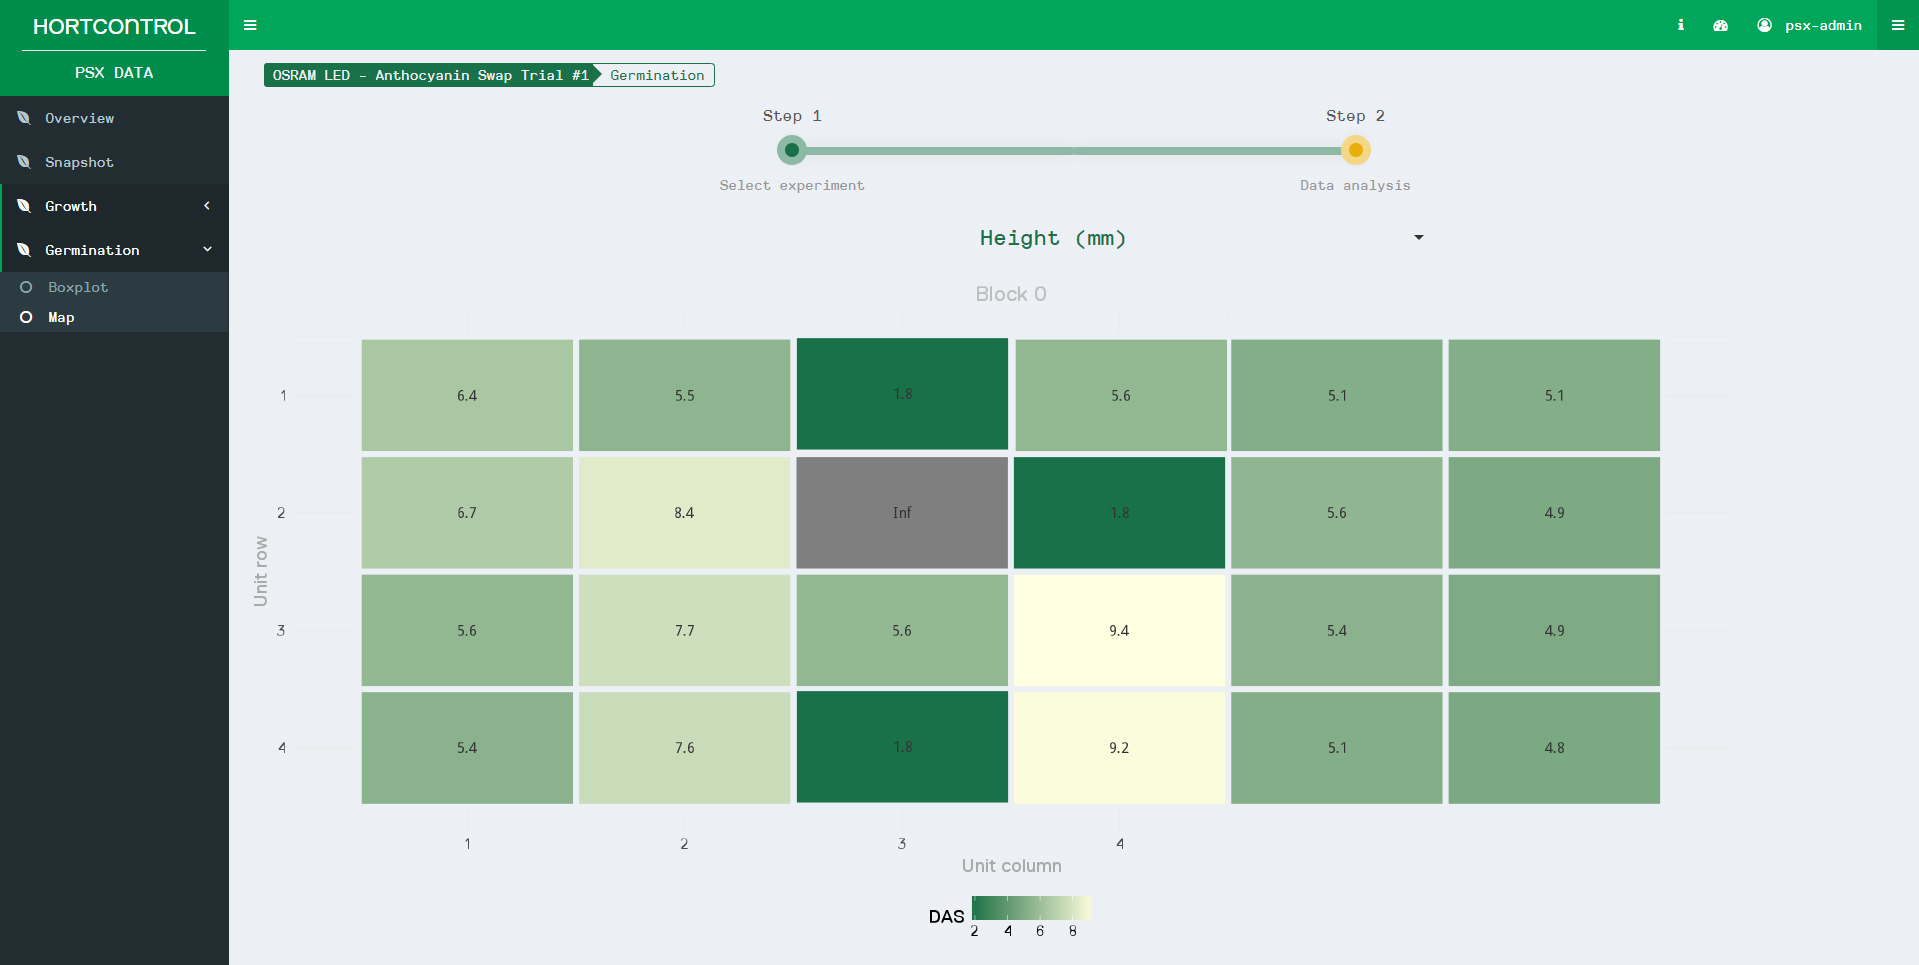 HortControl Germination Assay app - Showing days after sowing for each unit